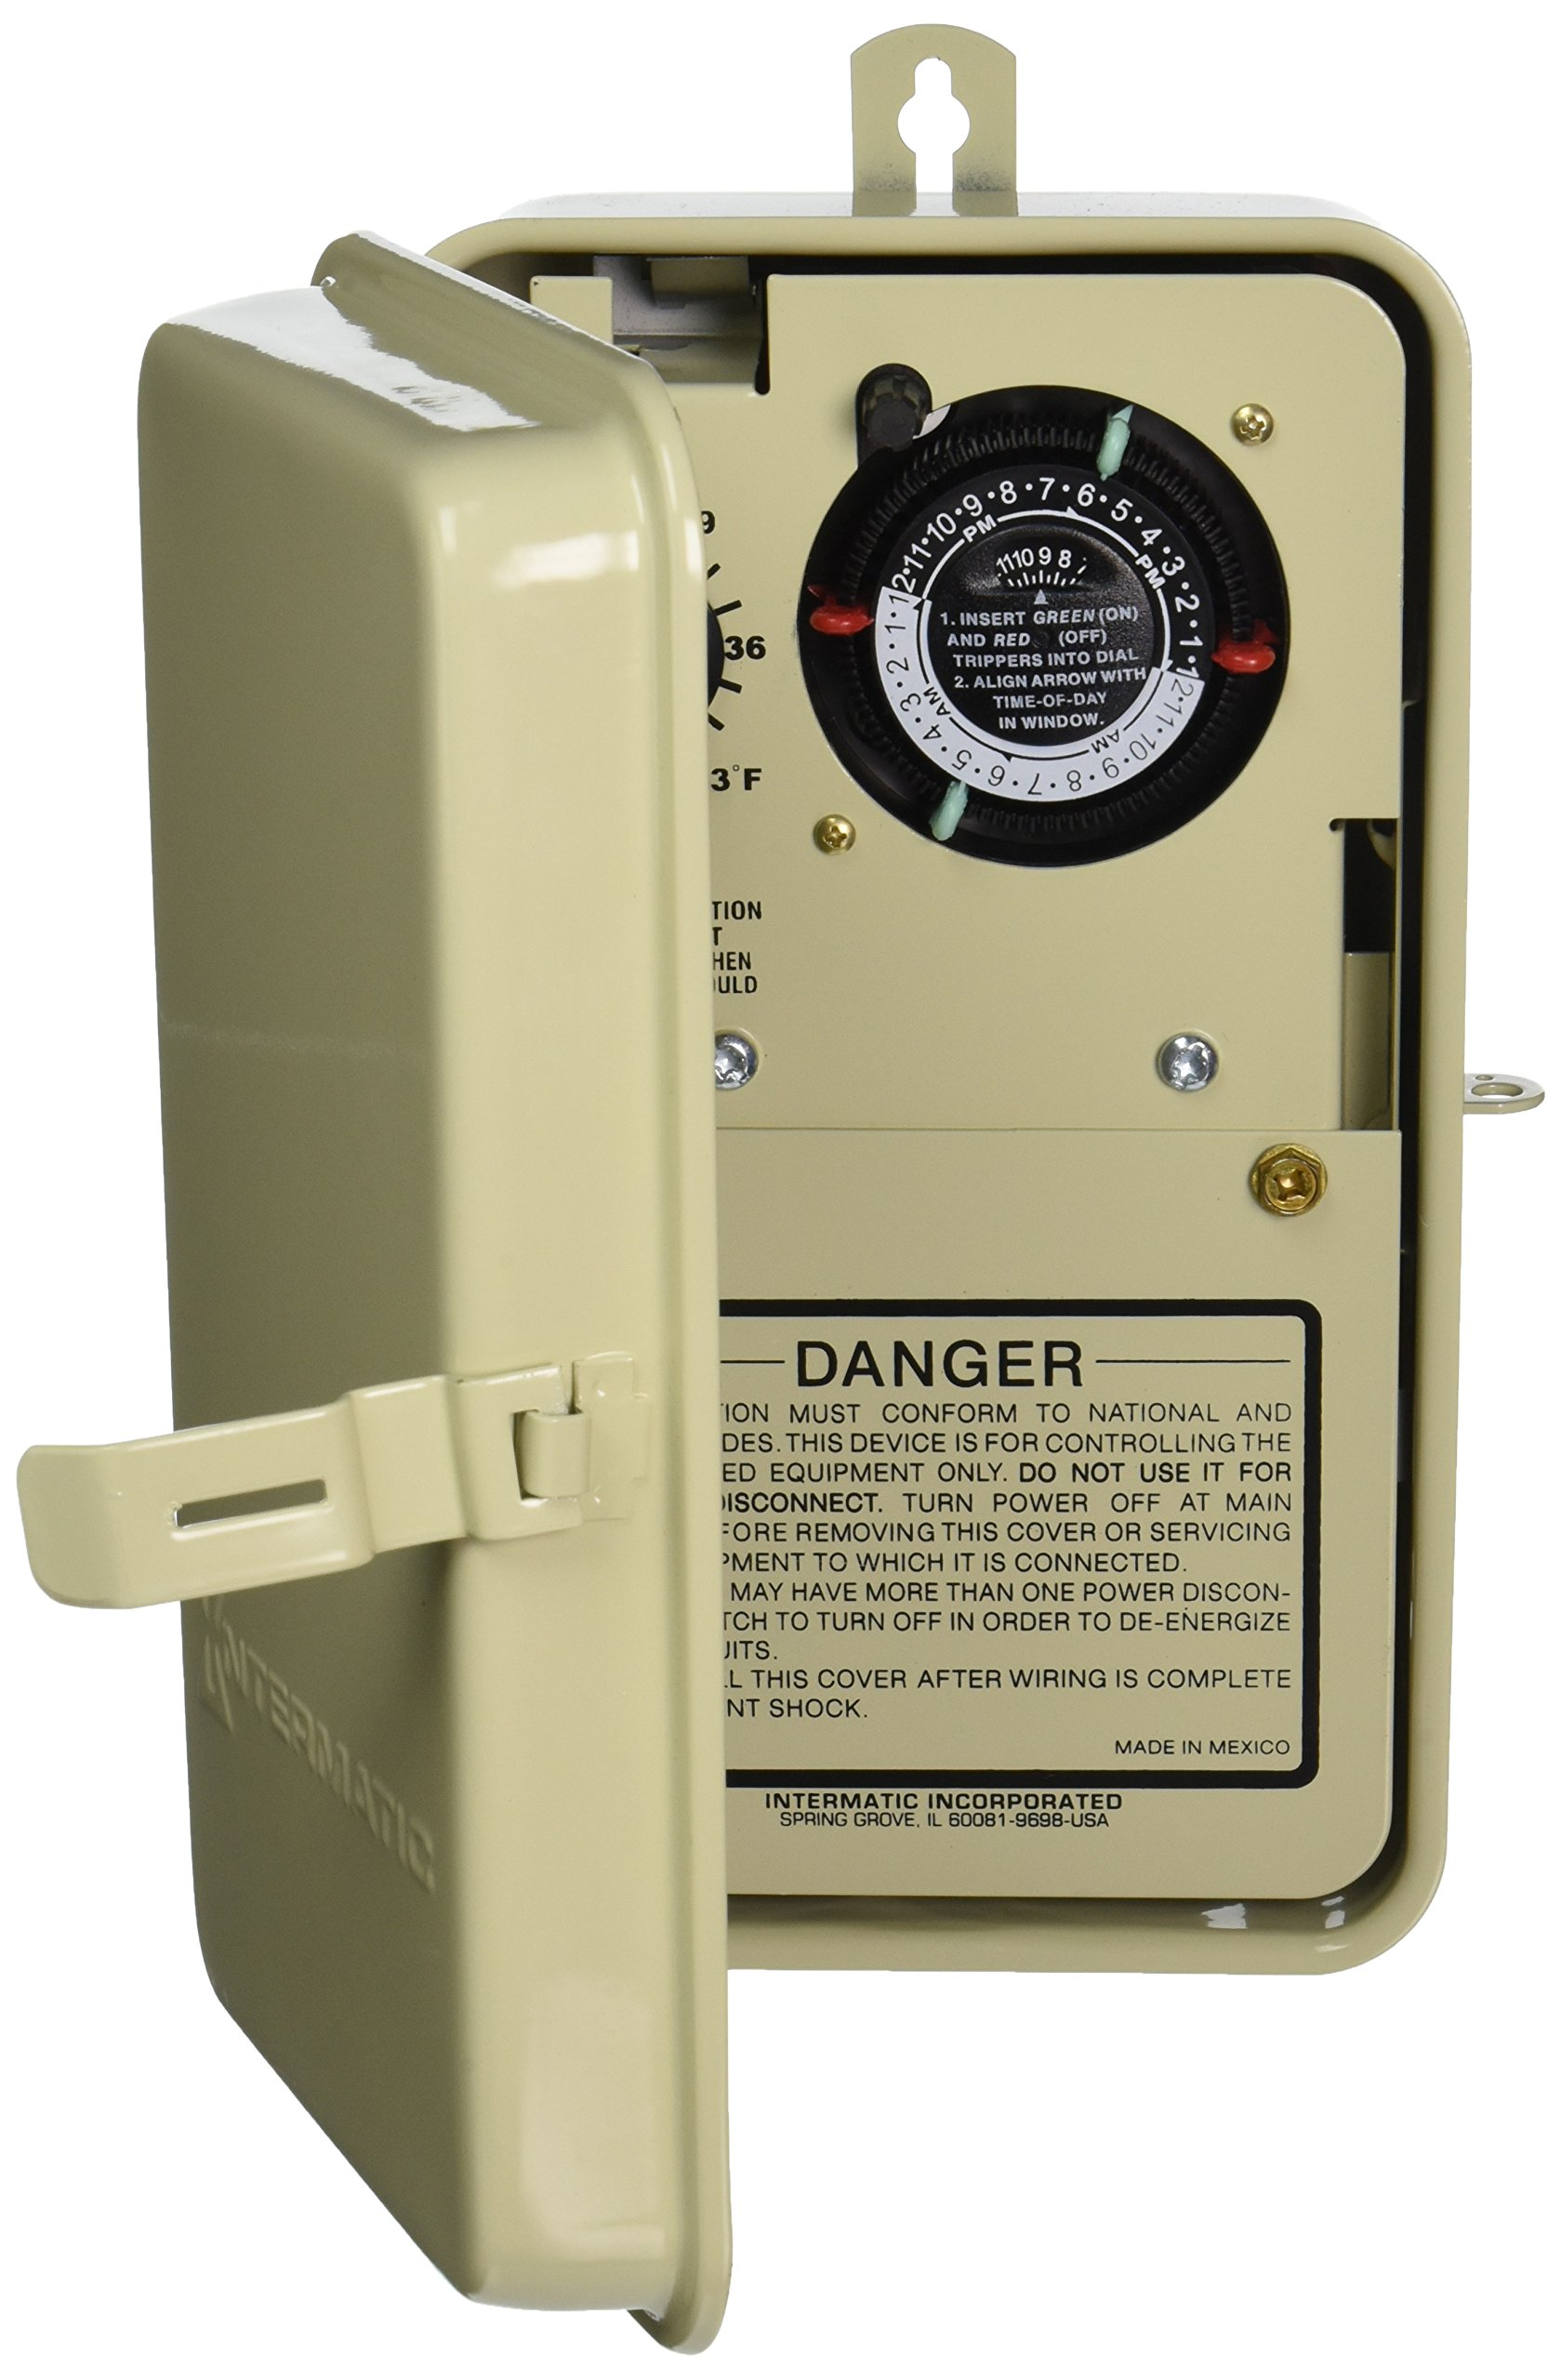 Intermatic PF1103T 1.5/3HP Freeze Protection Timer and Thermostat by Intermatic